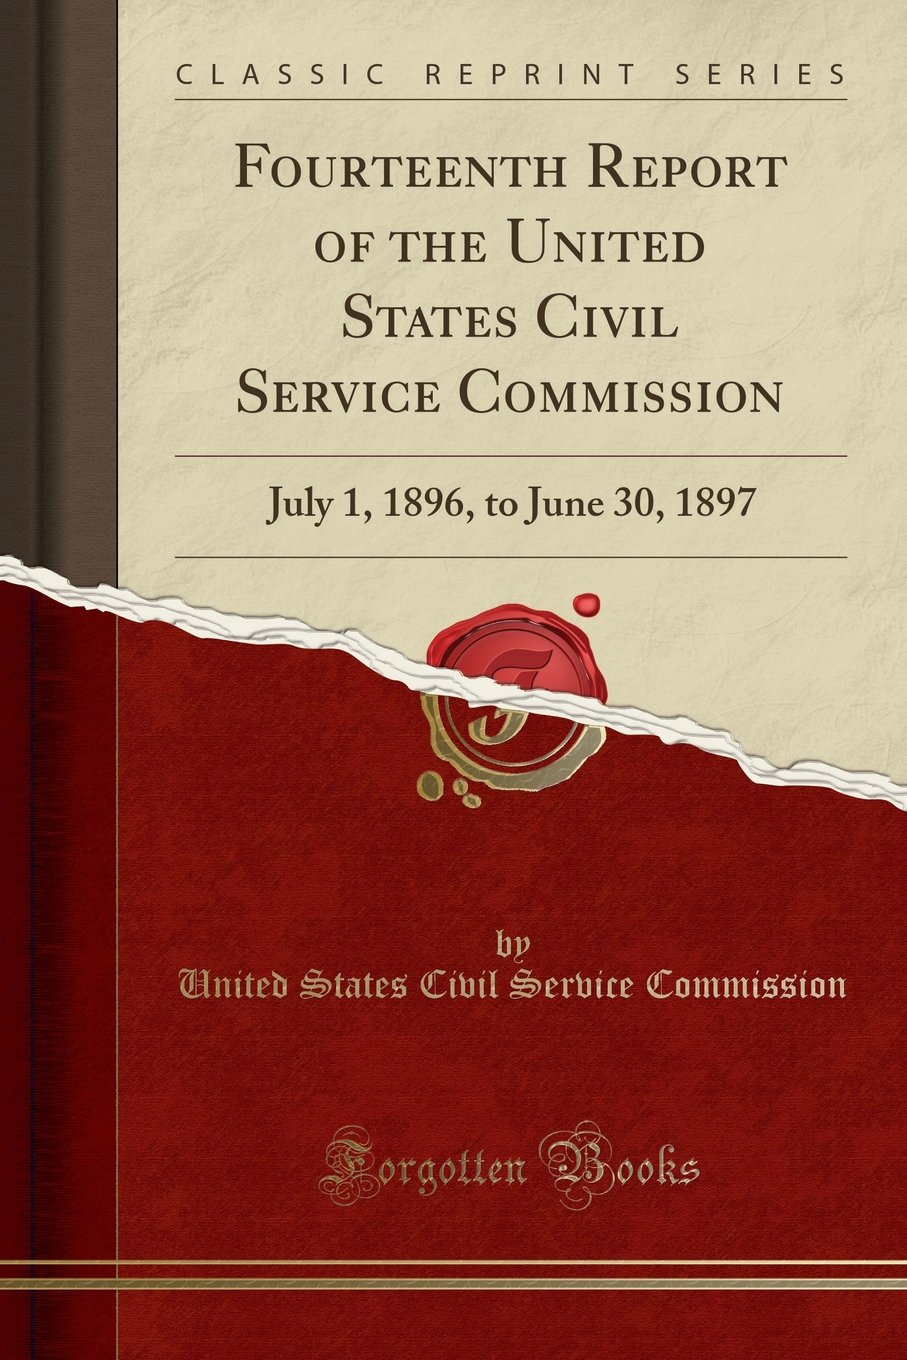 Fourteenth Report of the United States Civil Service Commission: July 1, 1896, to June 30, 1897 (Classic Reprint) ebook